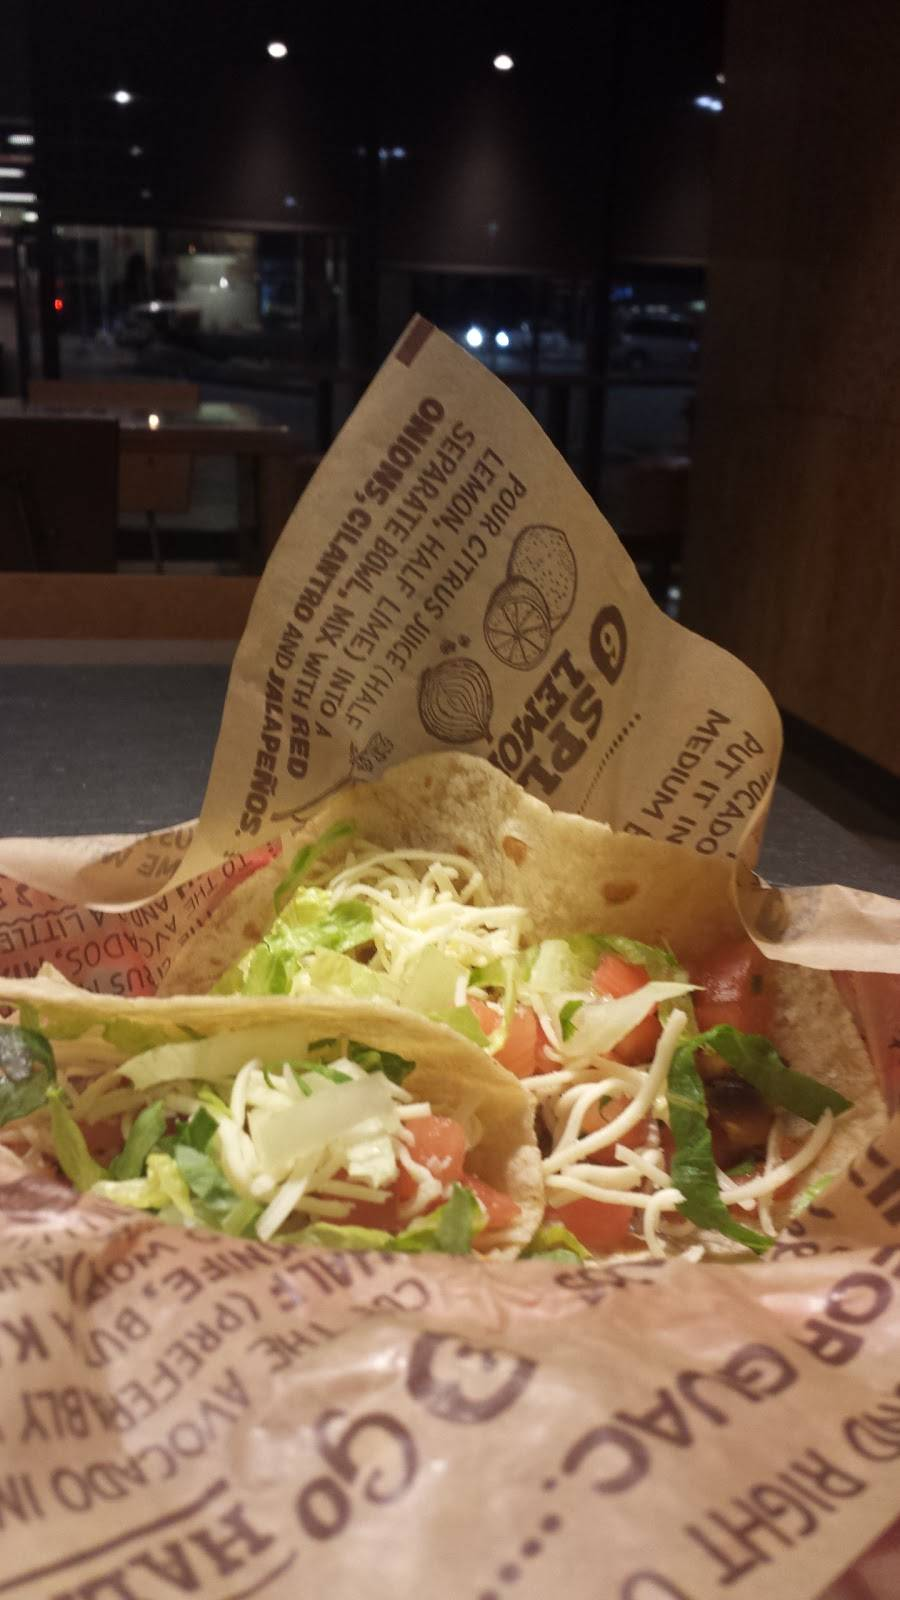 Chipotle Mexican Grill   restaurant   83 Vervalen St, Closter, NJ 07624, USA   2017682505 OR +1 201-768-2505